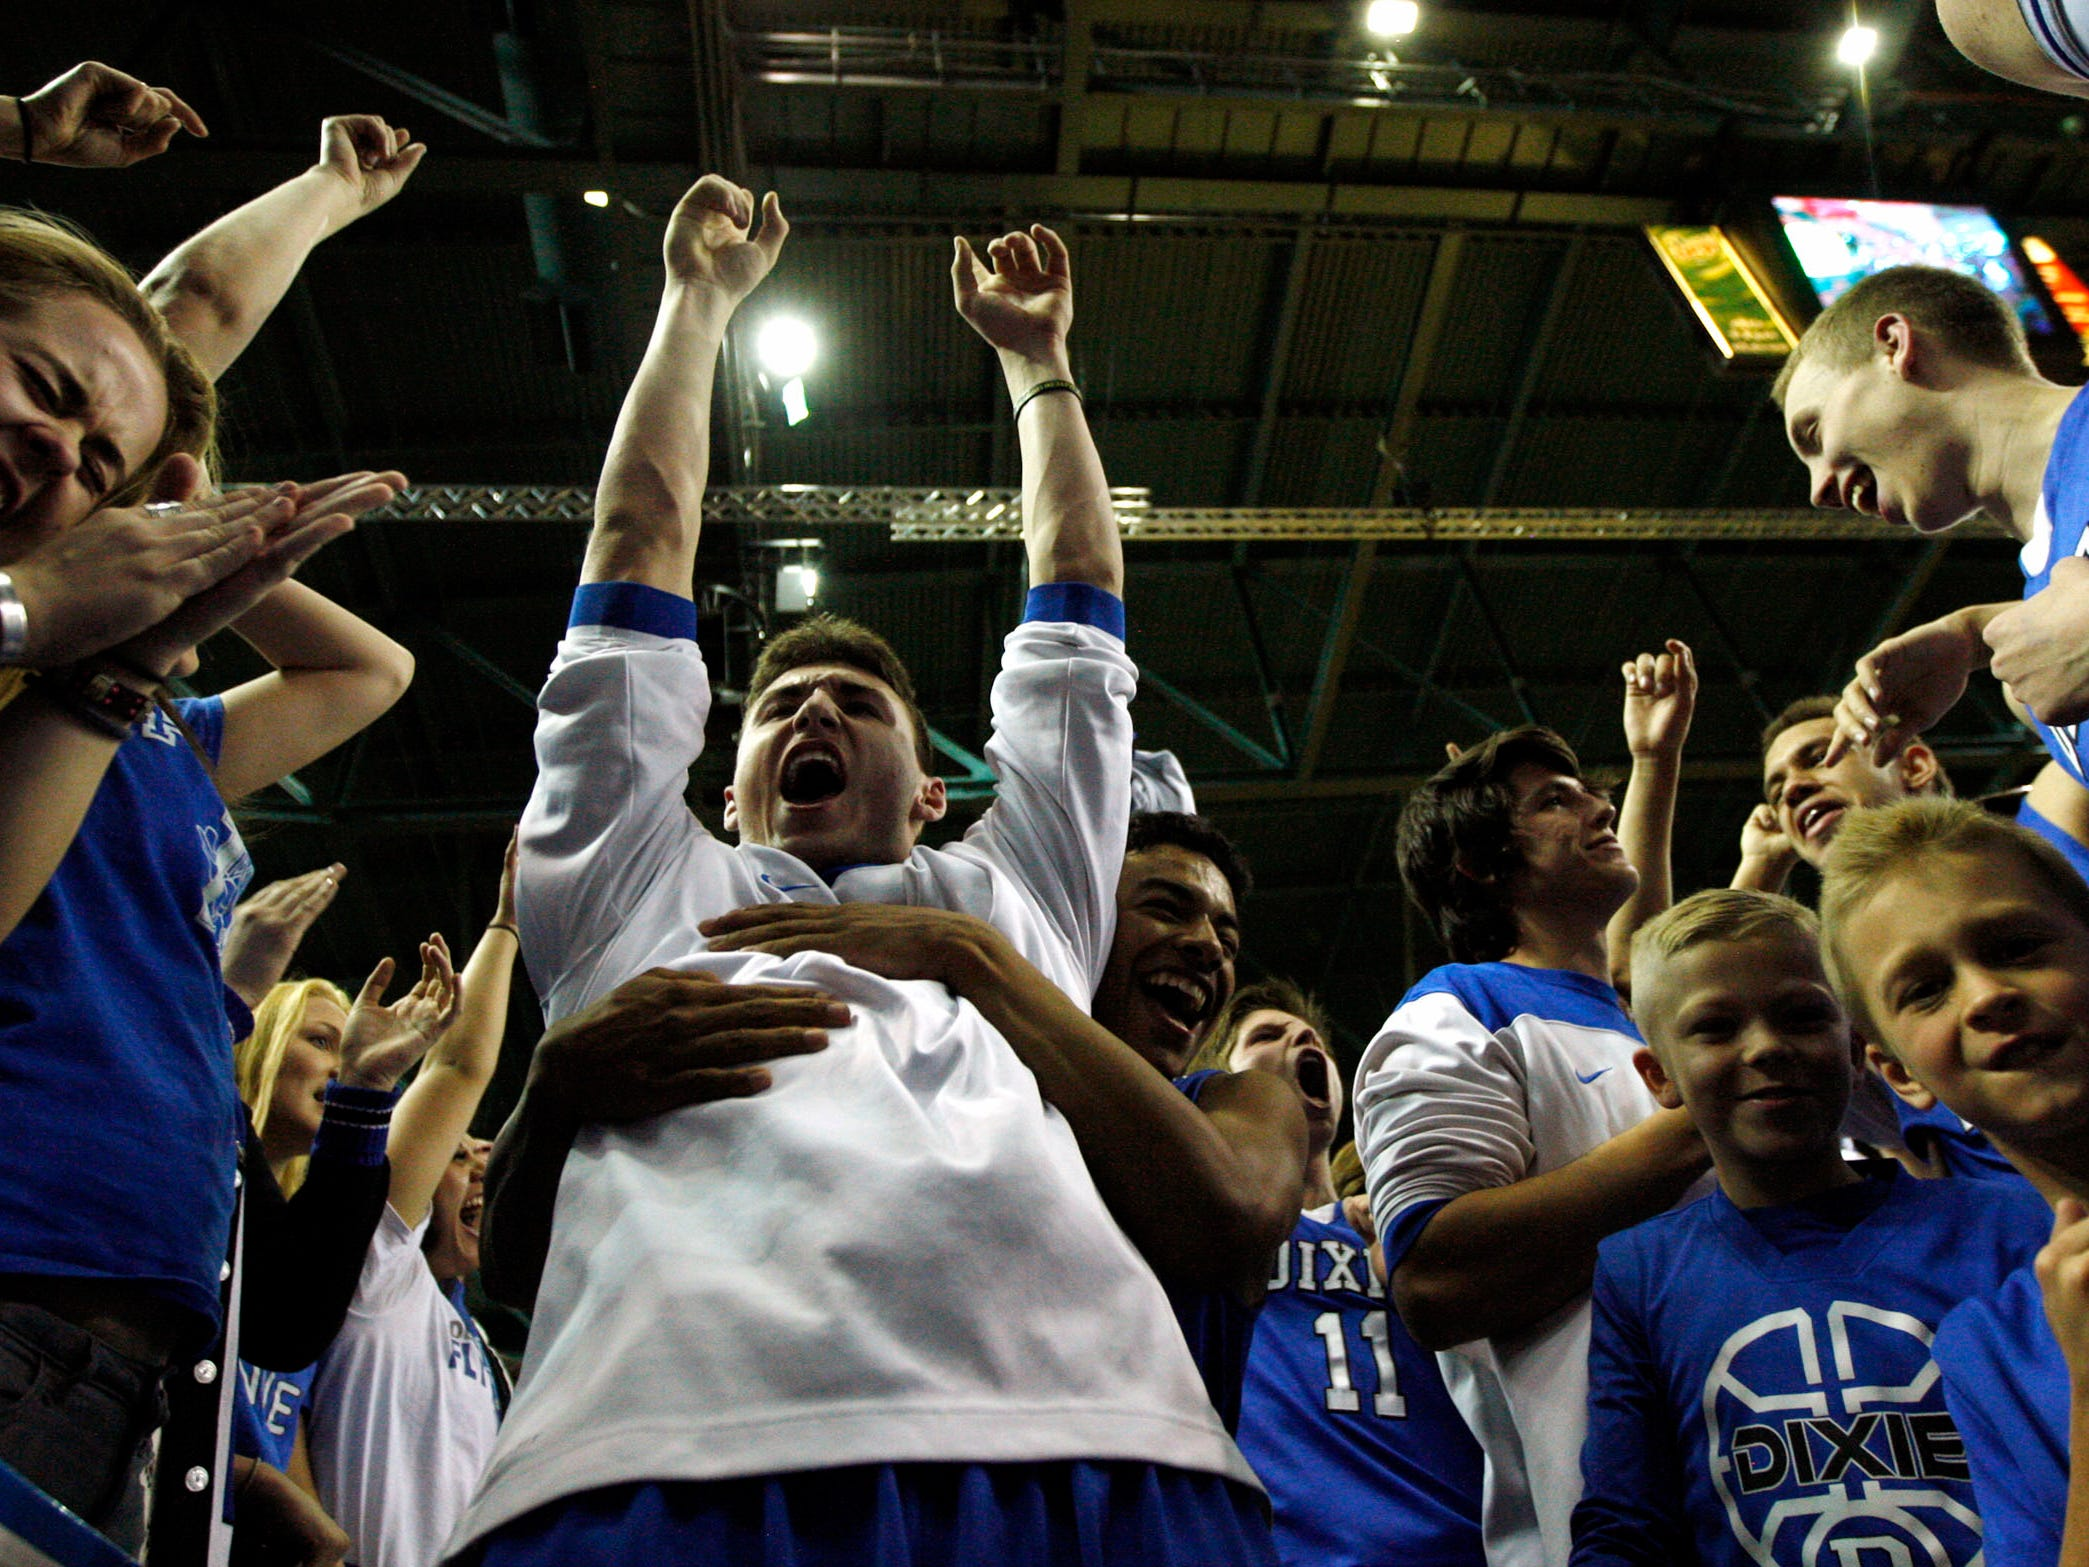 Dixie celebrates its win over Desert Hills in quadruple overtime in the 3A boys basketball semifinals at the Maverik Center in West Valley City Friday, Feb. 27, 2015.